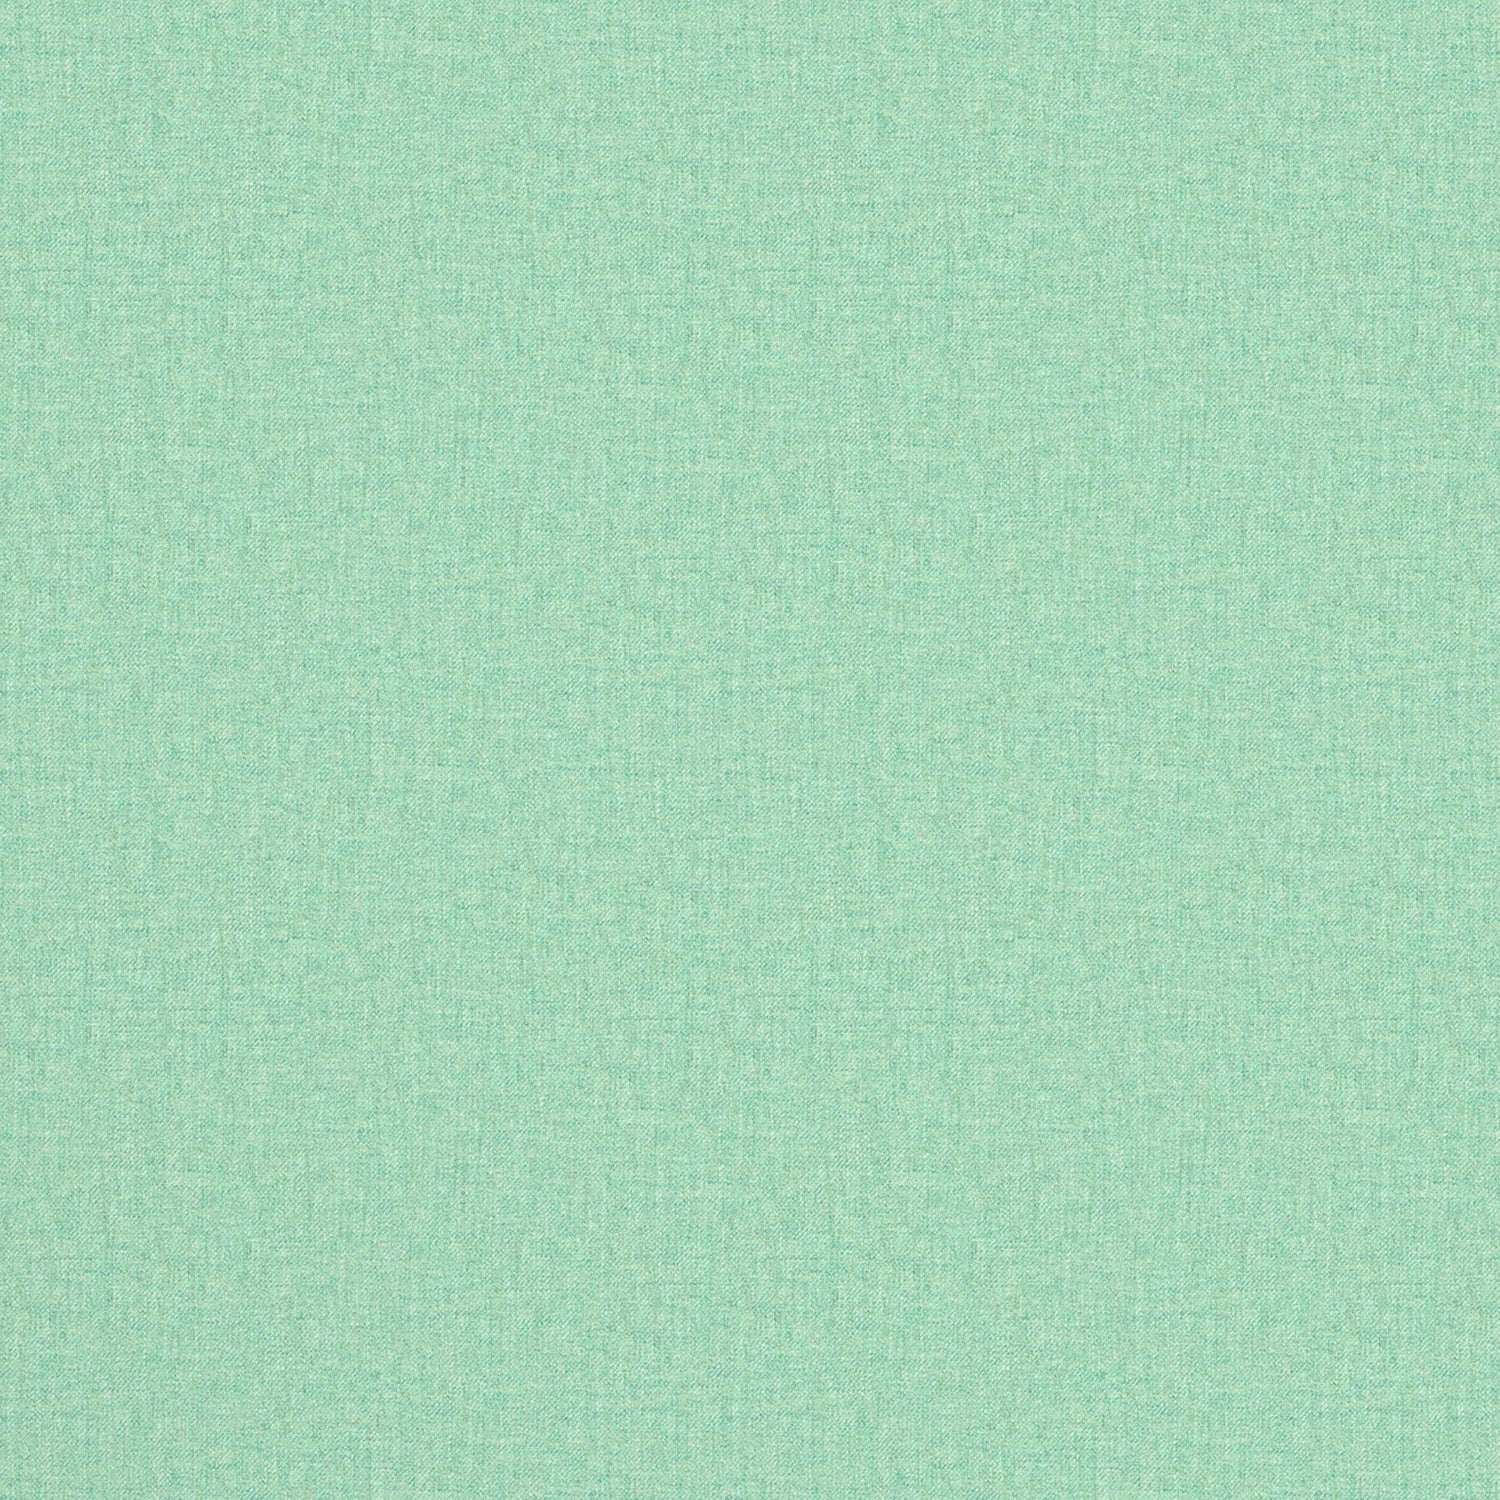 Fabric swatch of a luxury Scottish plain aqua coloured wool fabric suitable for curtains and upholstery